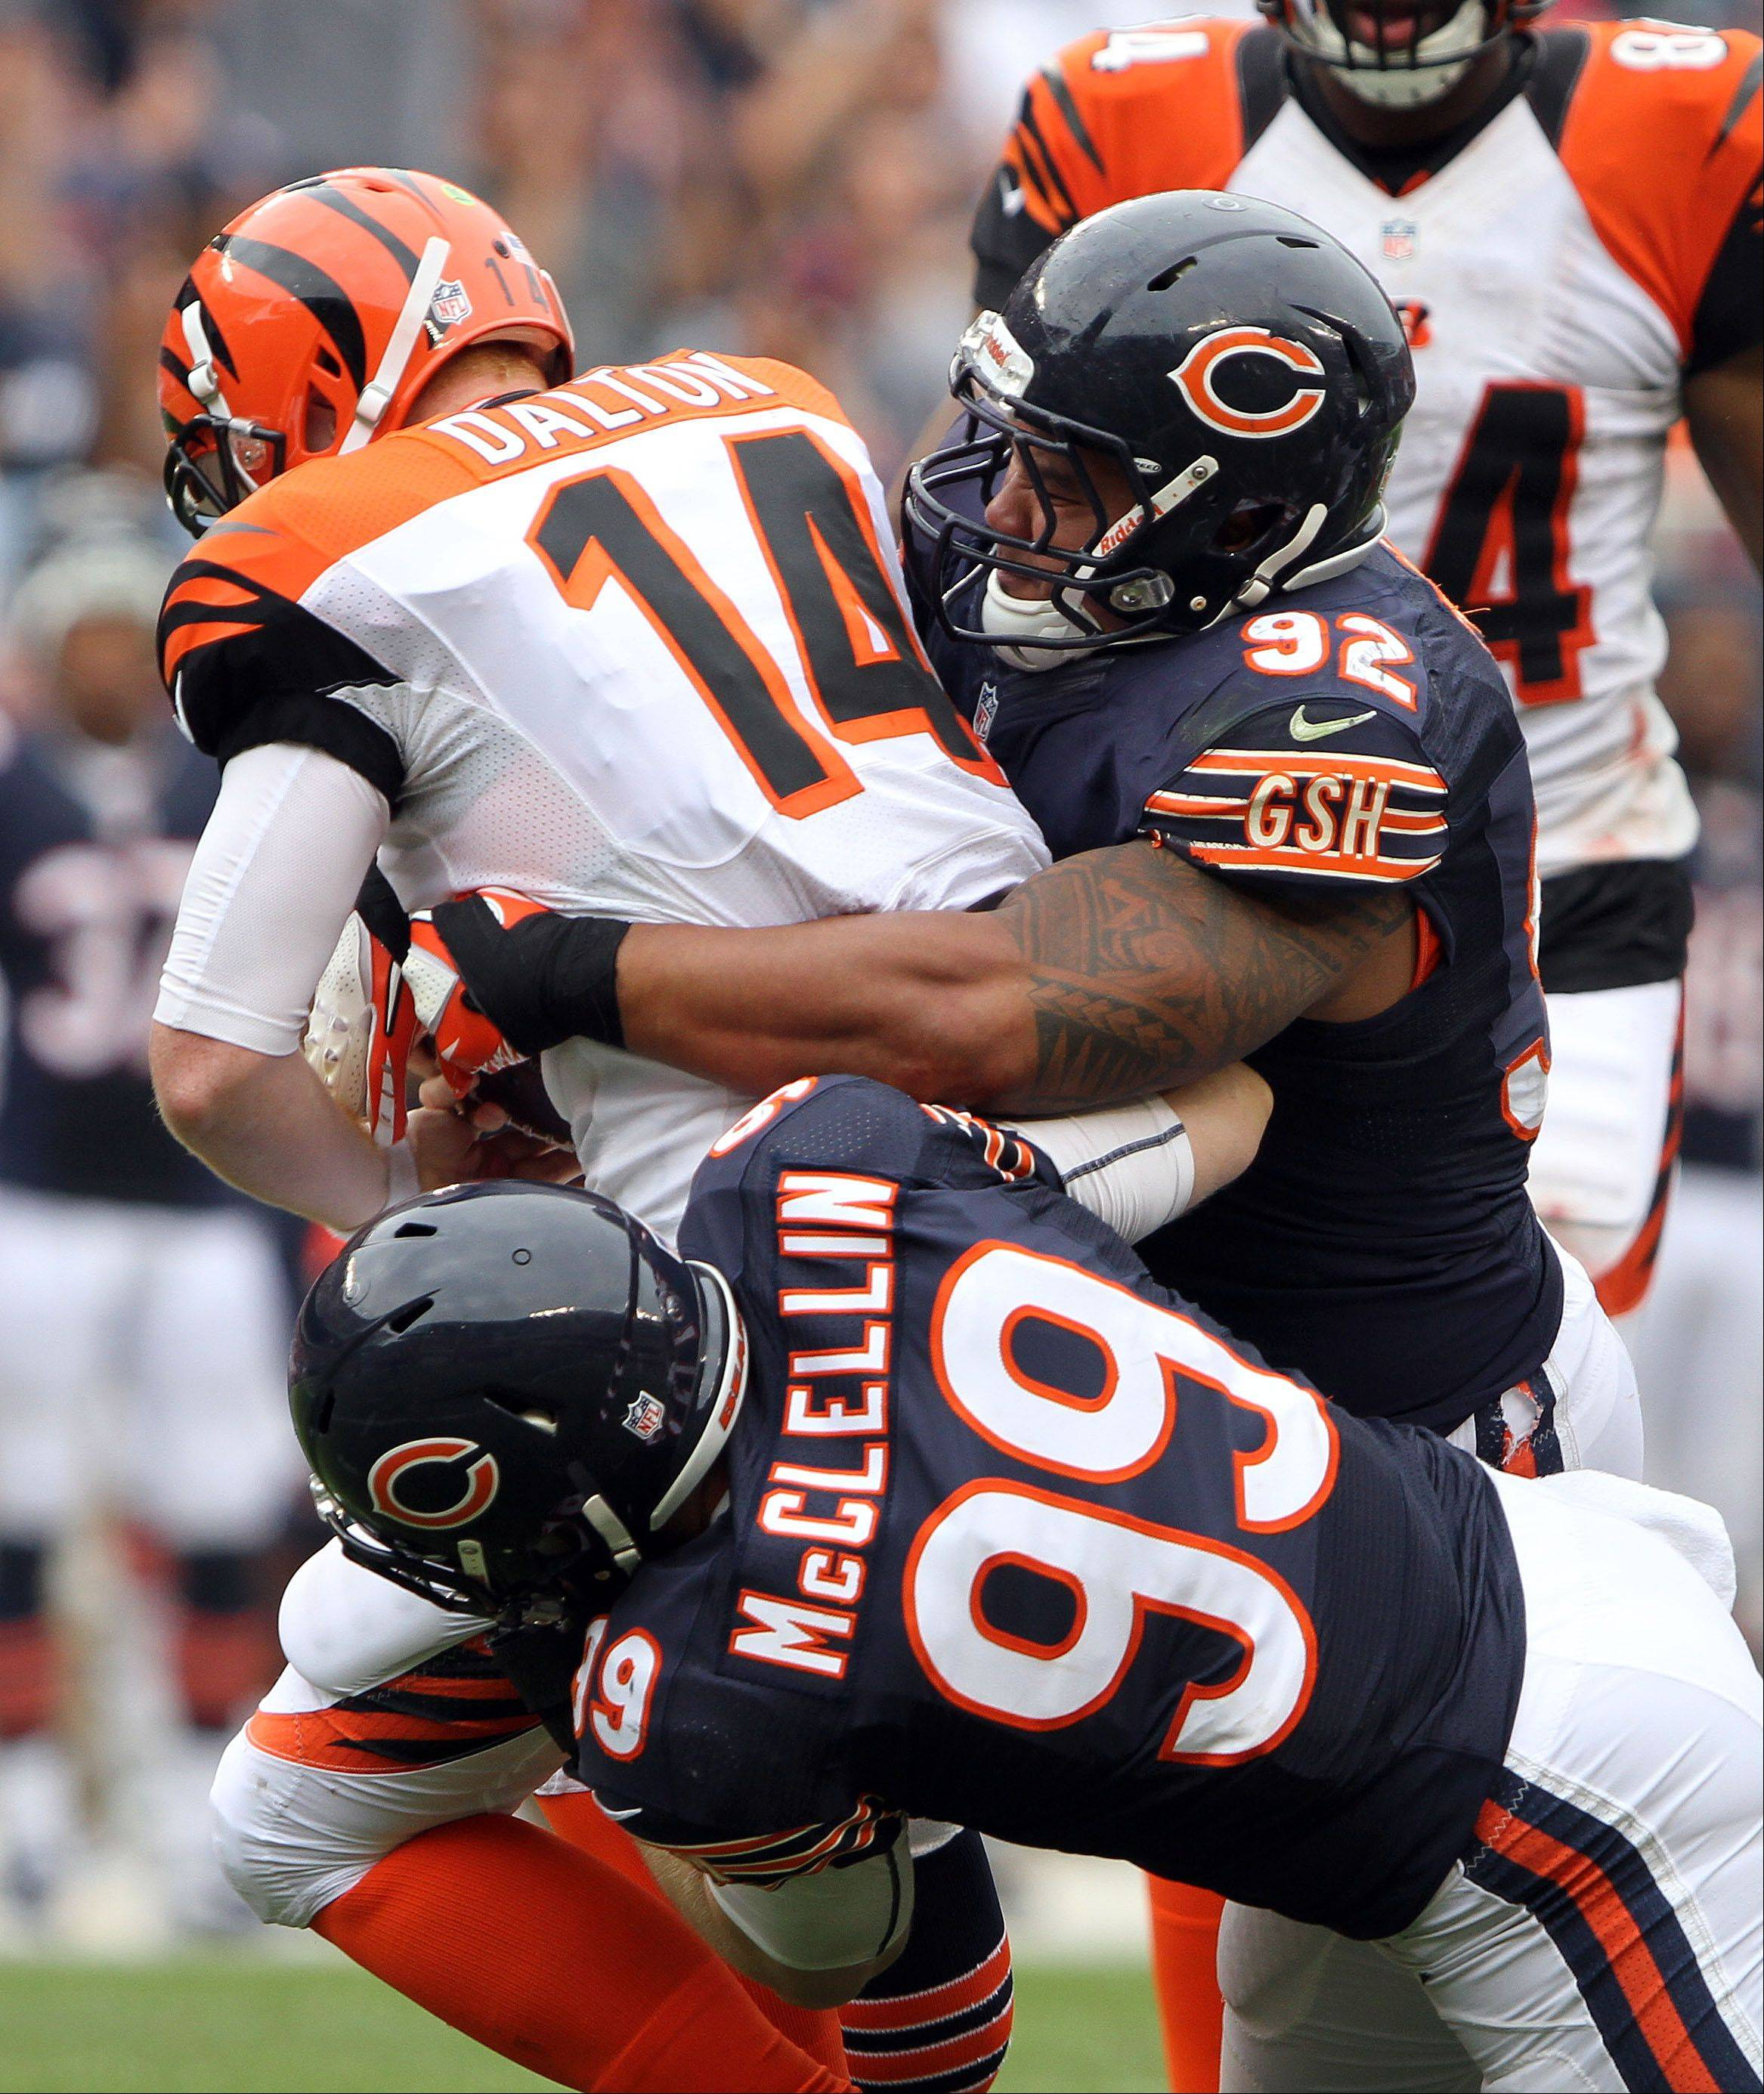 Steve Lundy/slundy@dailyherald.comChicago Bears defensive end Shea McClellin and Chicago Bears defensive tackle Stephen Paea sack Cincinnati Bengals quarterback Andy Dalton during their opening day game Sunday at Soldier Field.